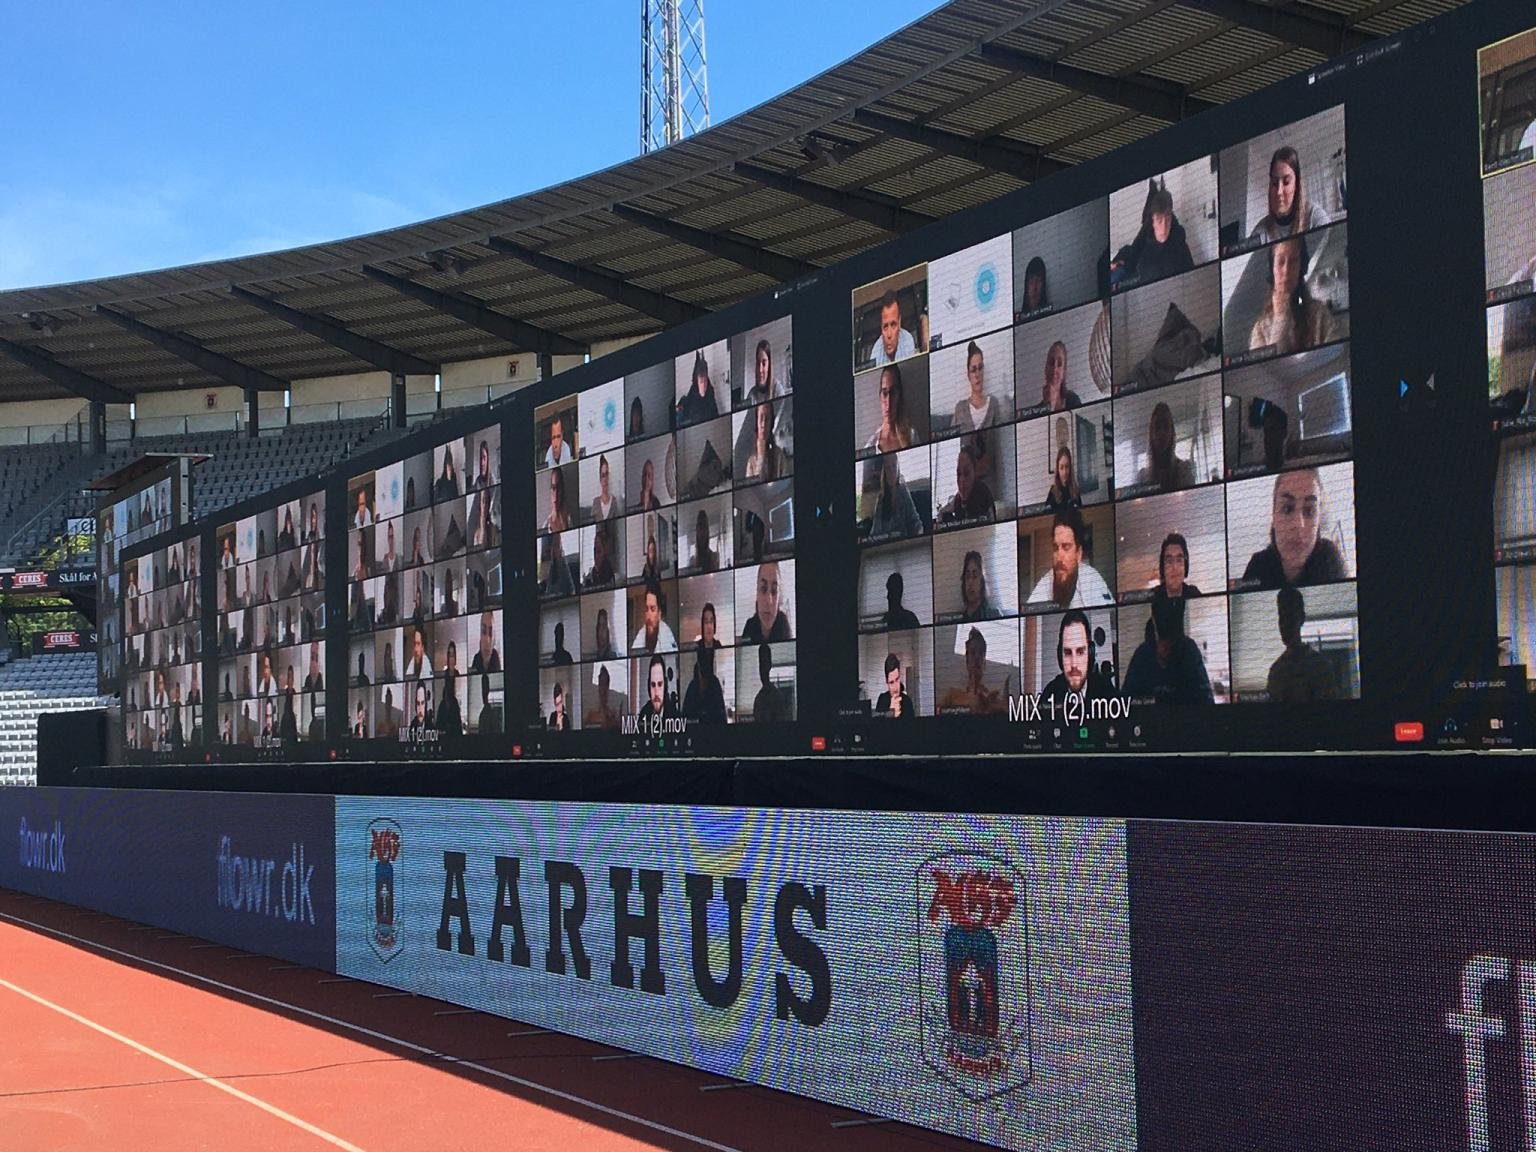 Aarhus GF delivers a virtual match experience to fans via Zoom